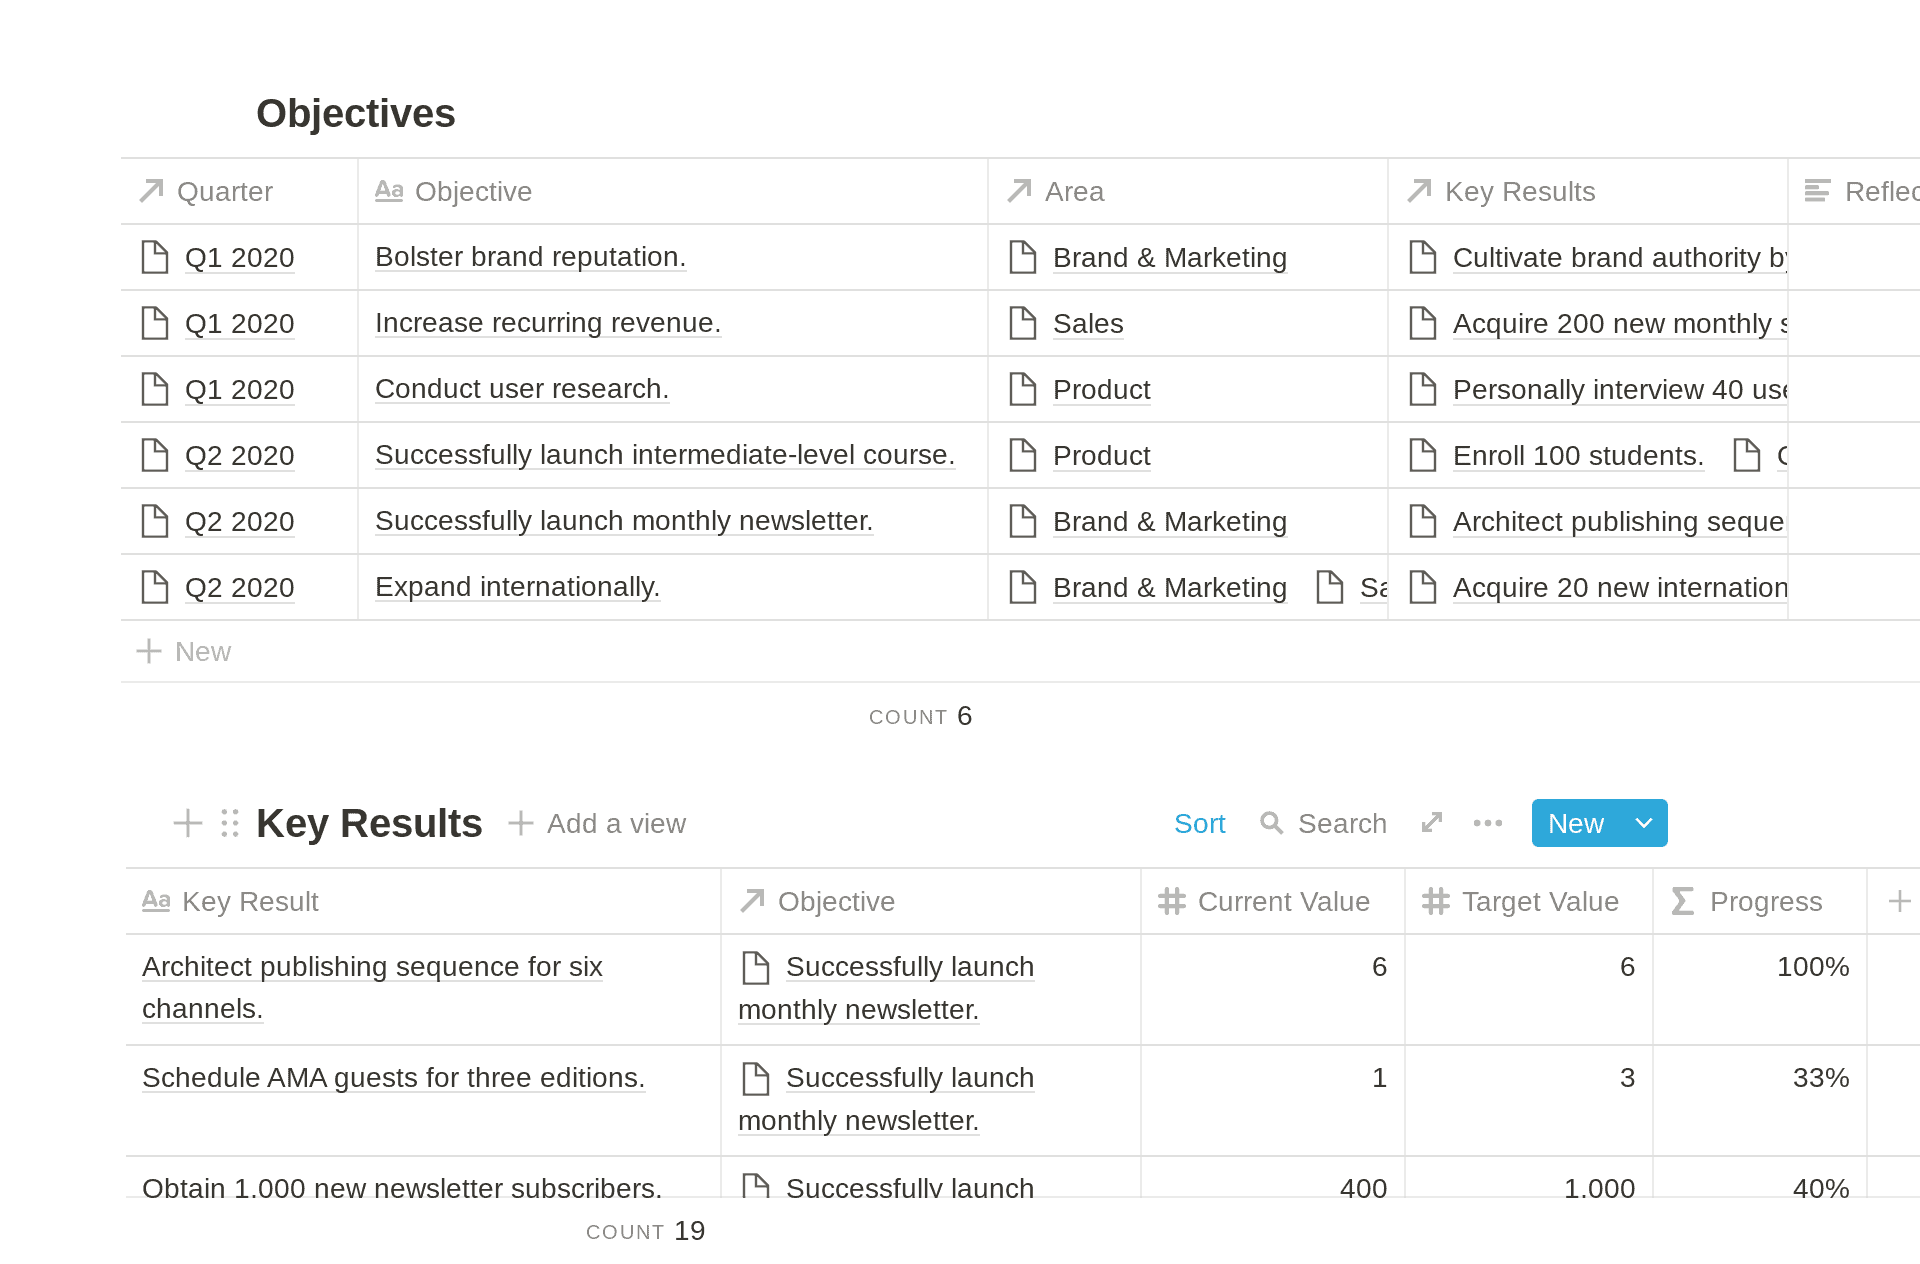 Notion Relate Objectives to Key Results